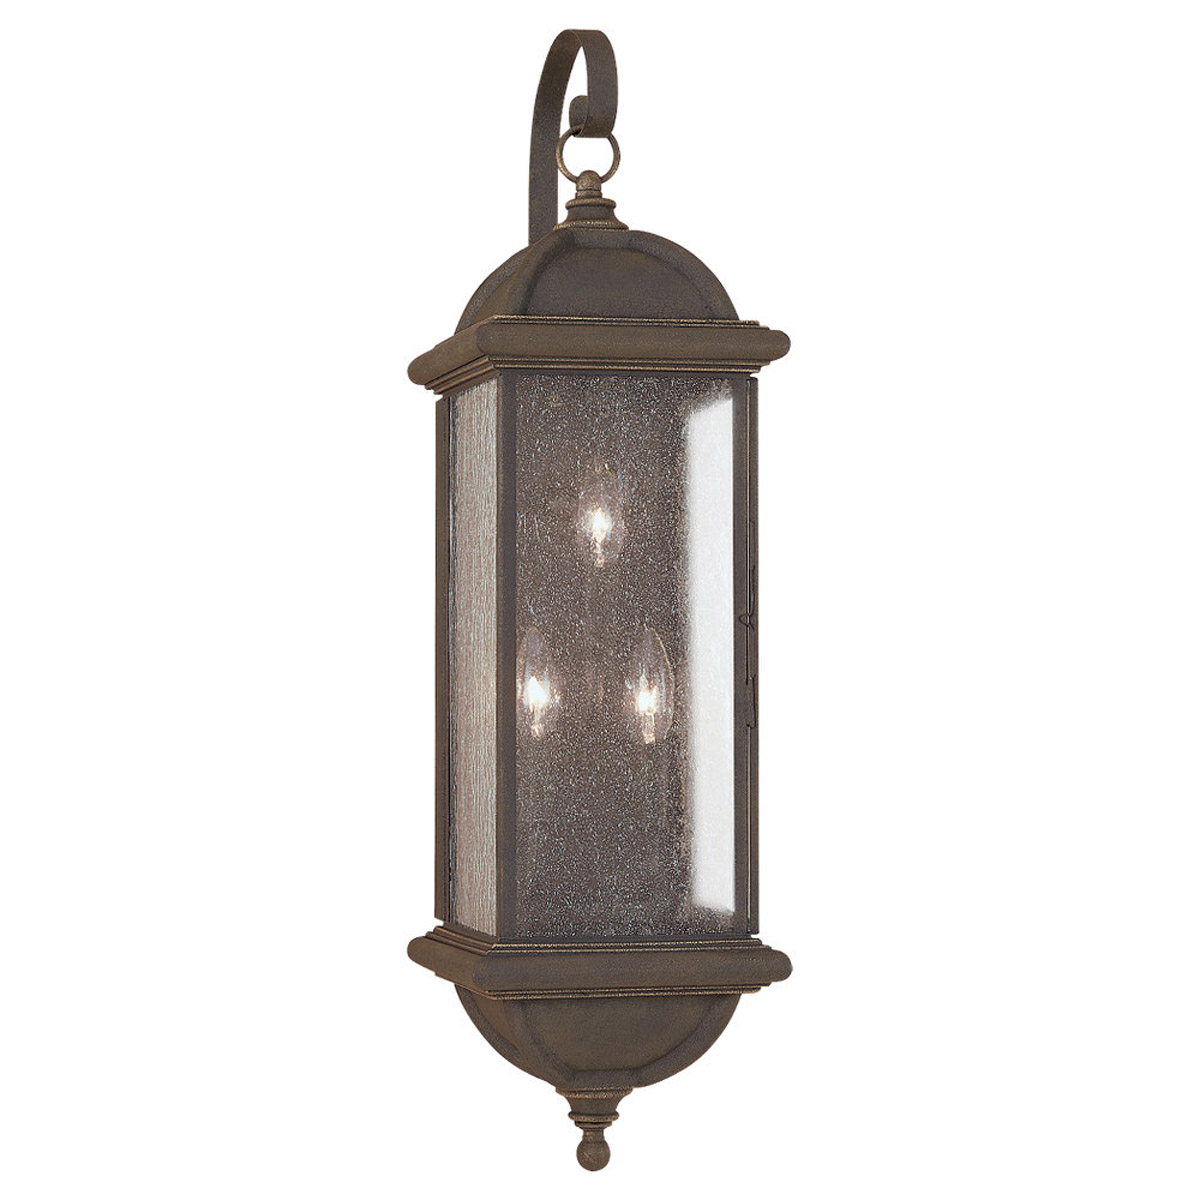 Sea Gull Lighting Charleston 3 Light Outdoor Wall Lantern in Gold Patina 8846-85 photo